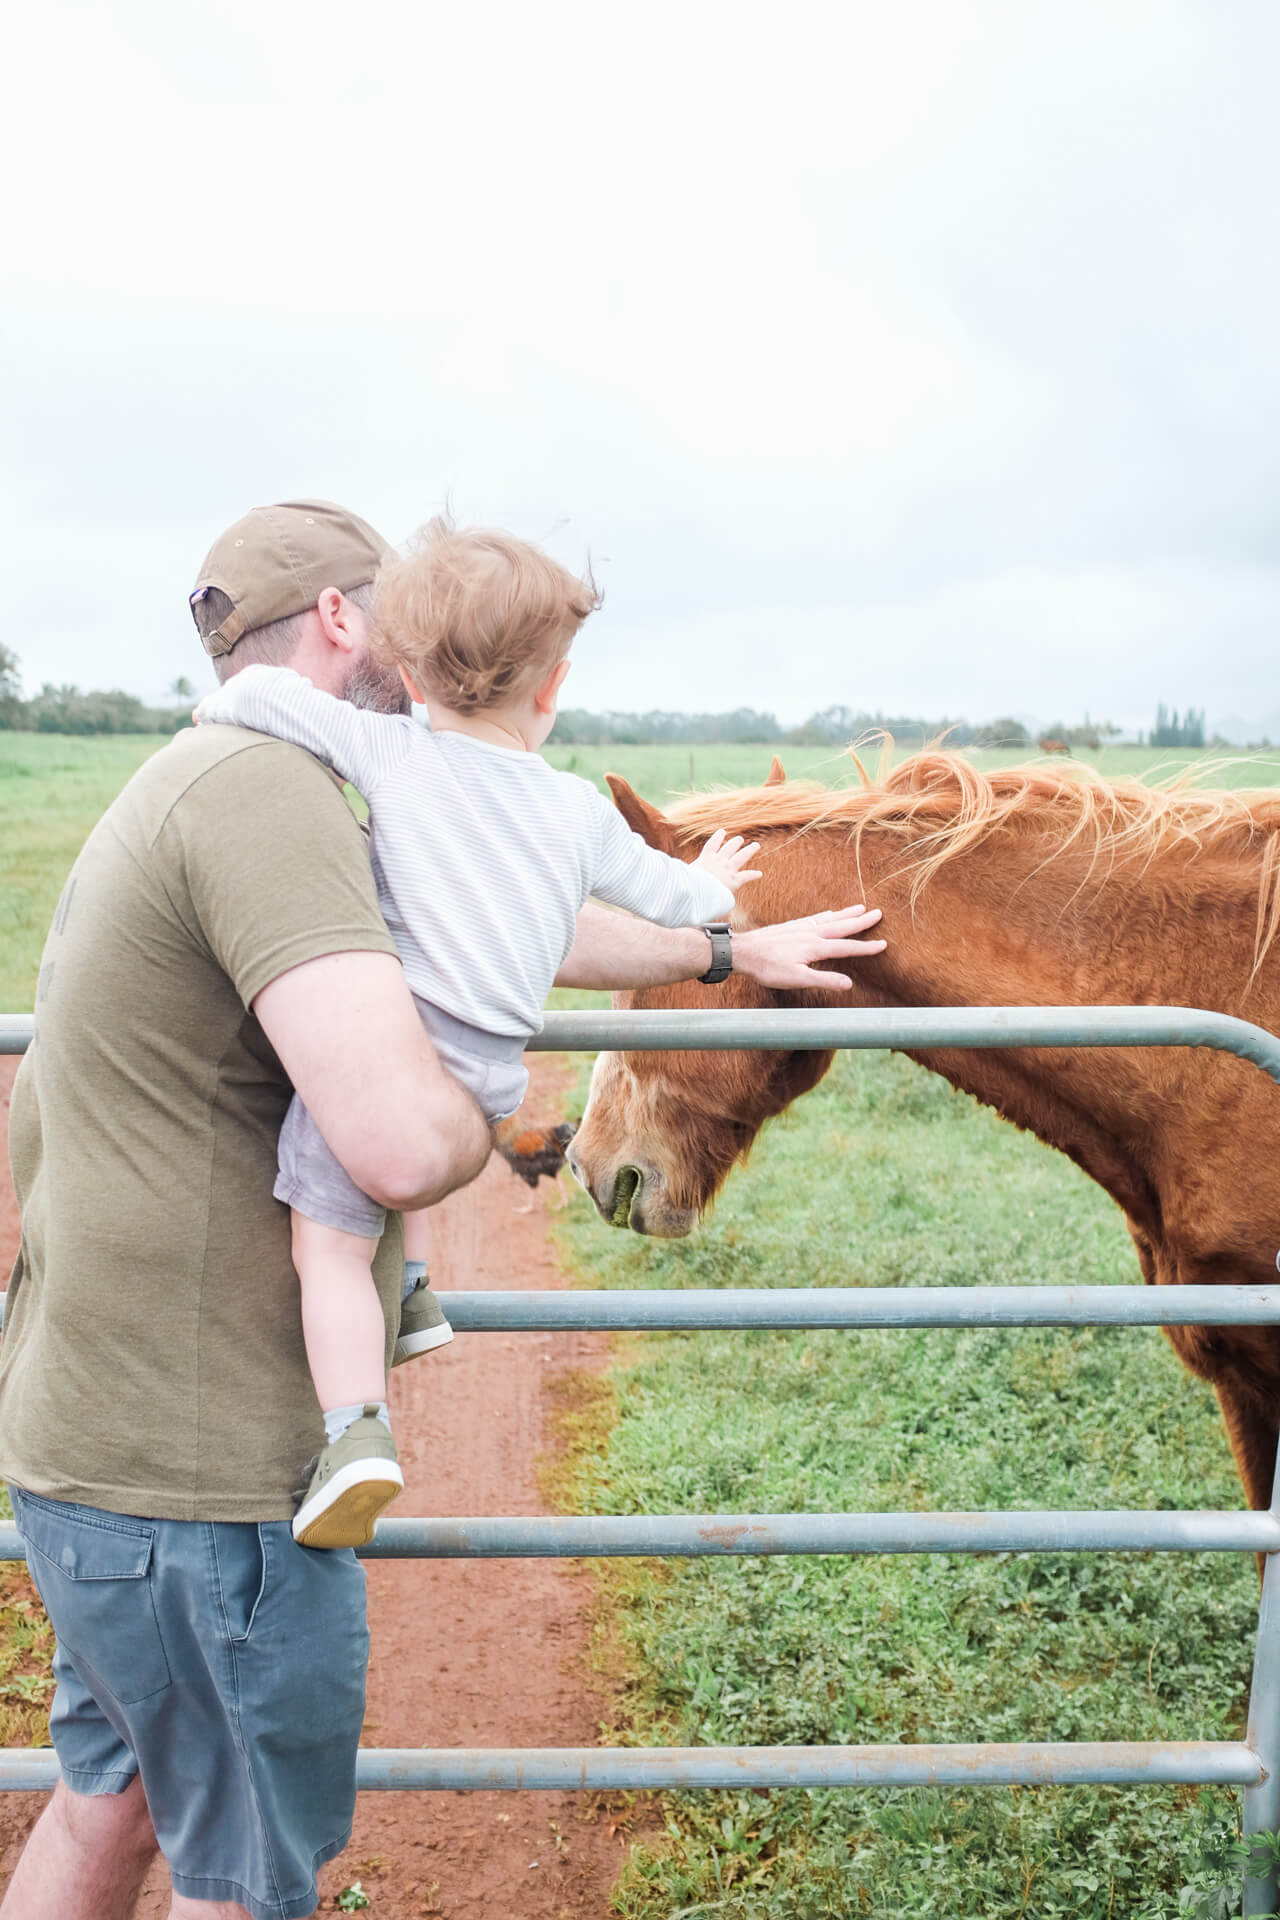 Augustine pets a horse for the first time